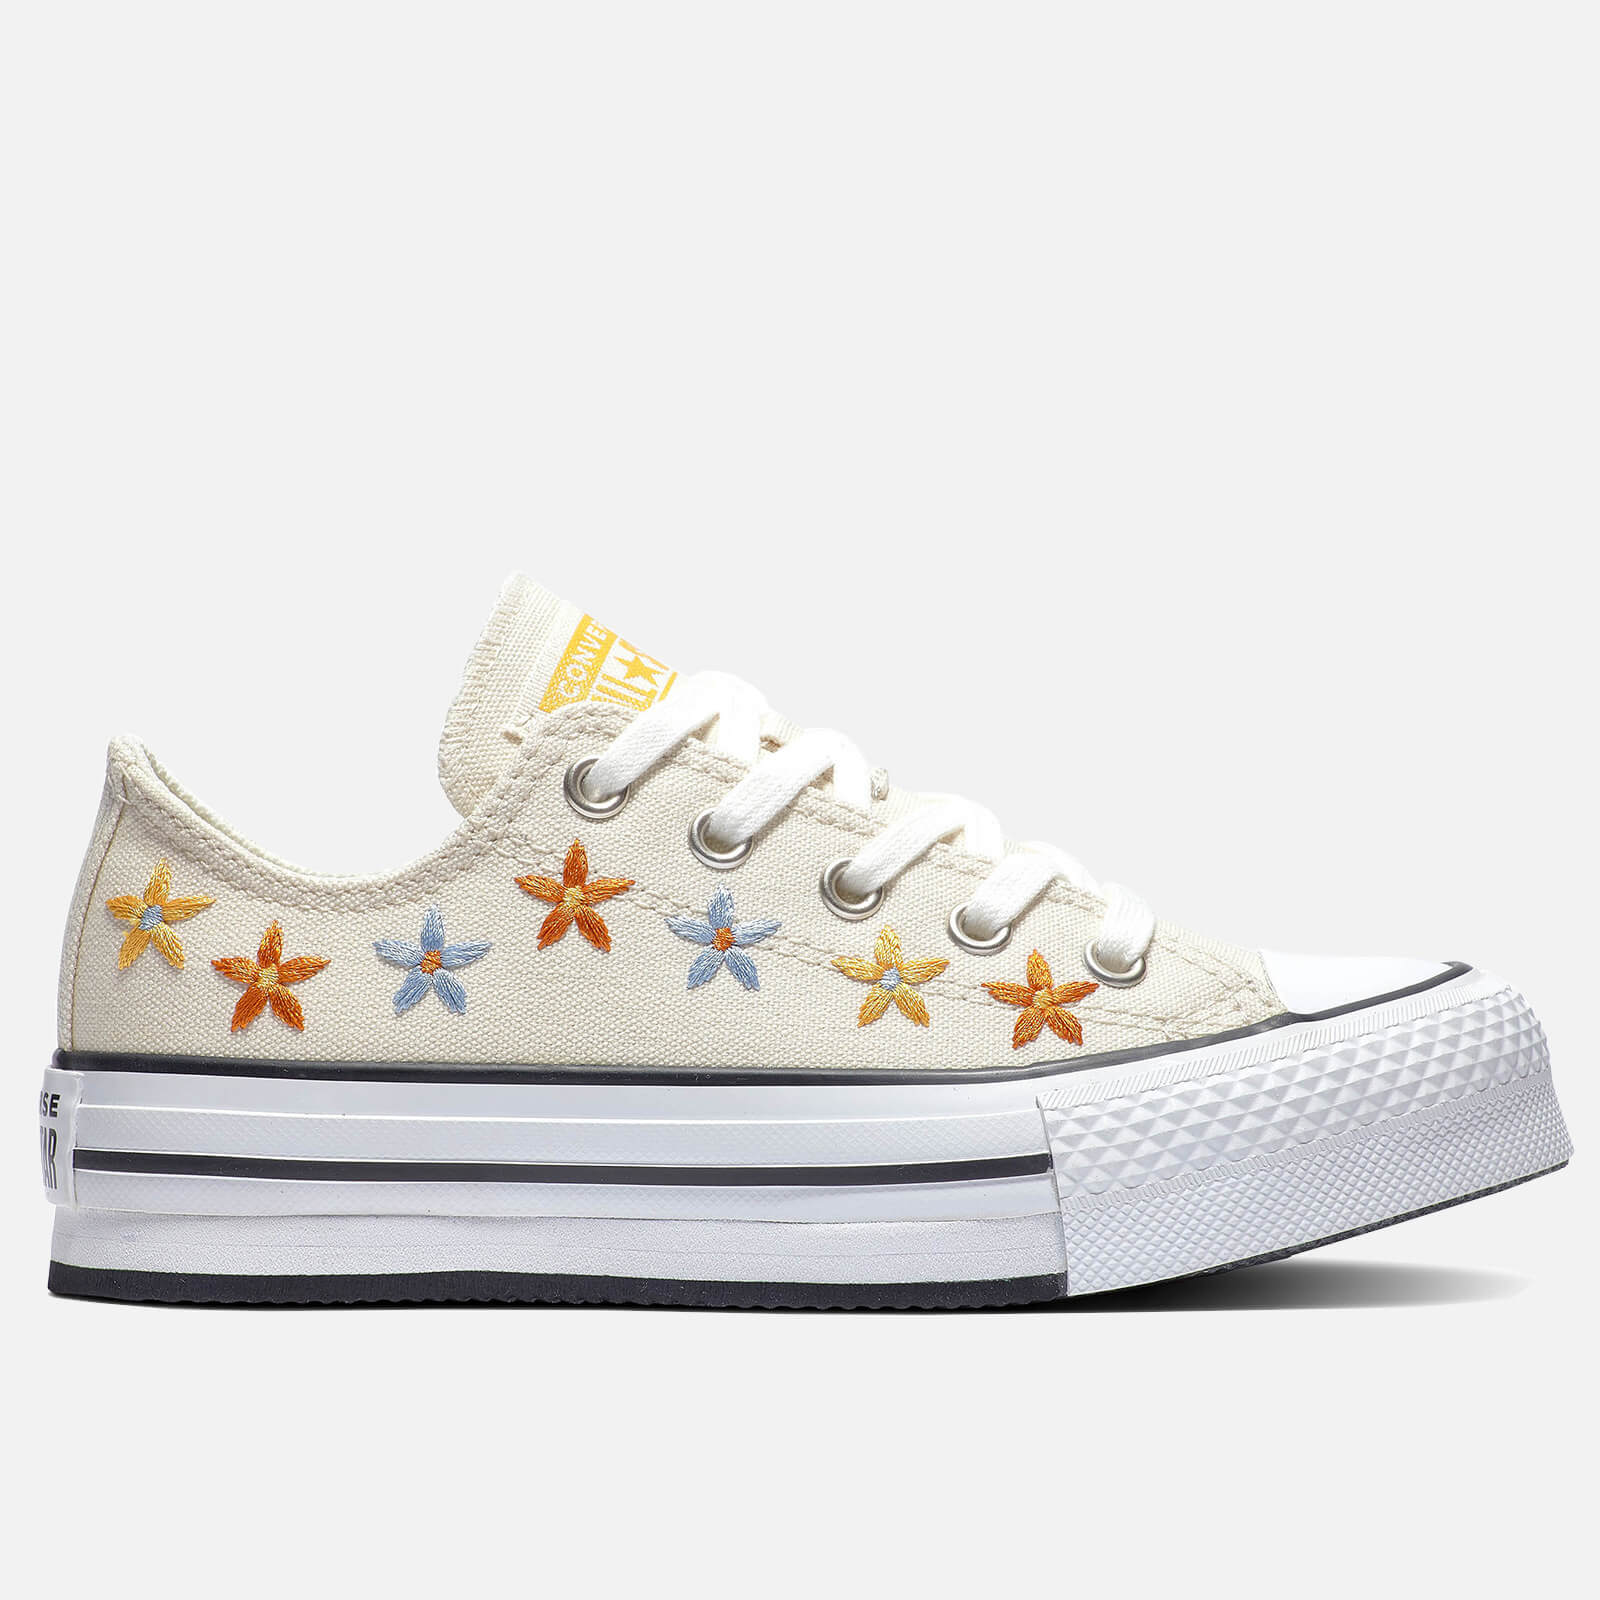 Converse Kids' Chuck Taylor All Star Digital Ox Floral Trainers - Natural Ivory/Egret - UK 10 Kids